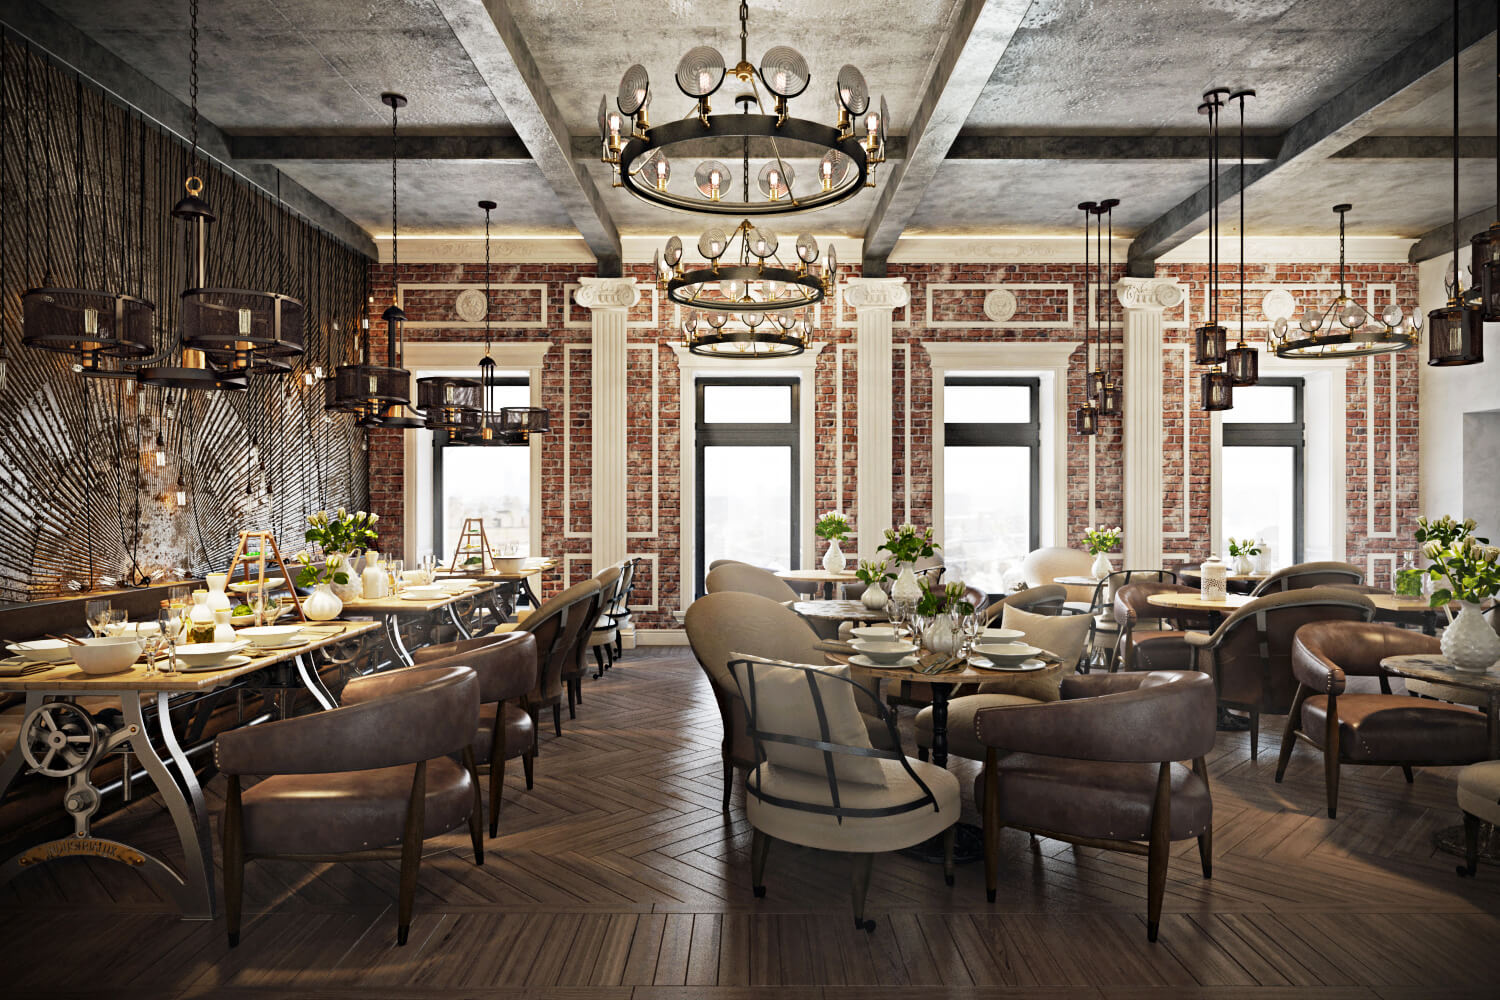 stunning restaurant interior design the chic of original - decor10